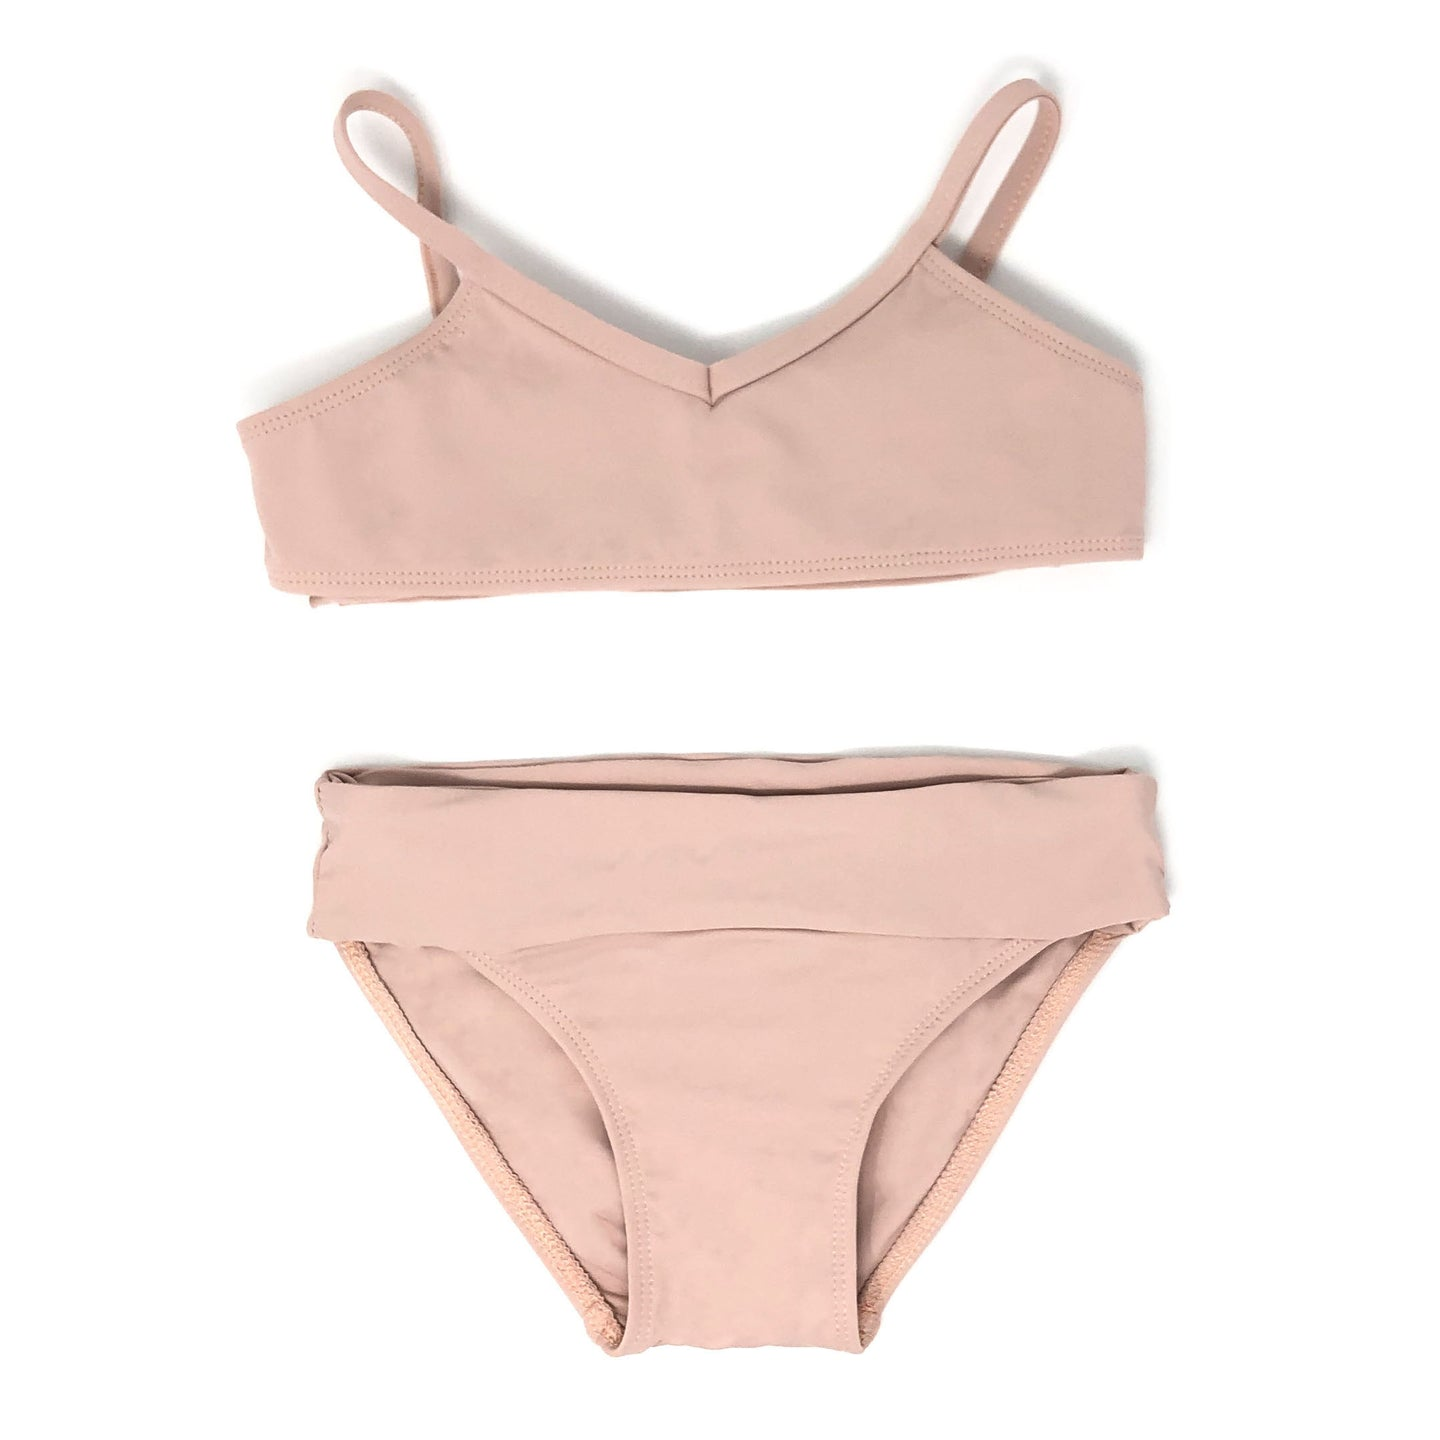 Presley girls bikini in Rose